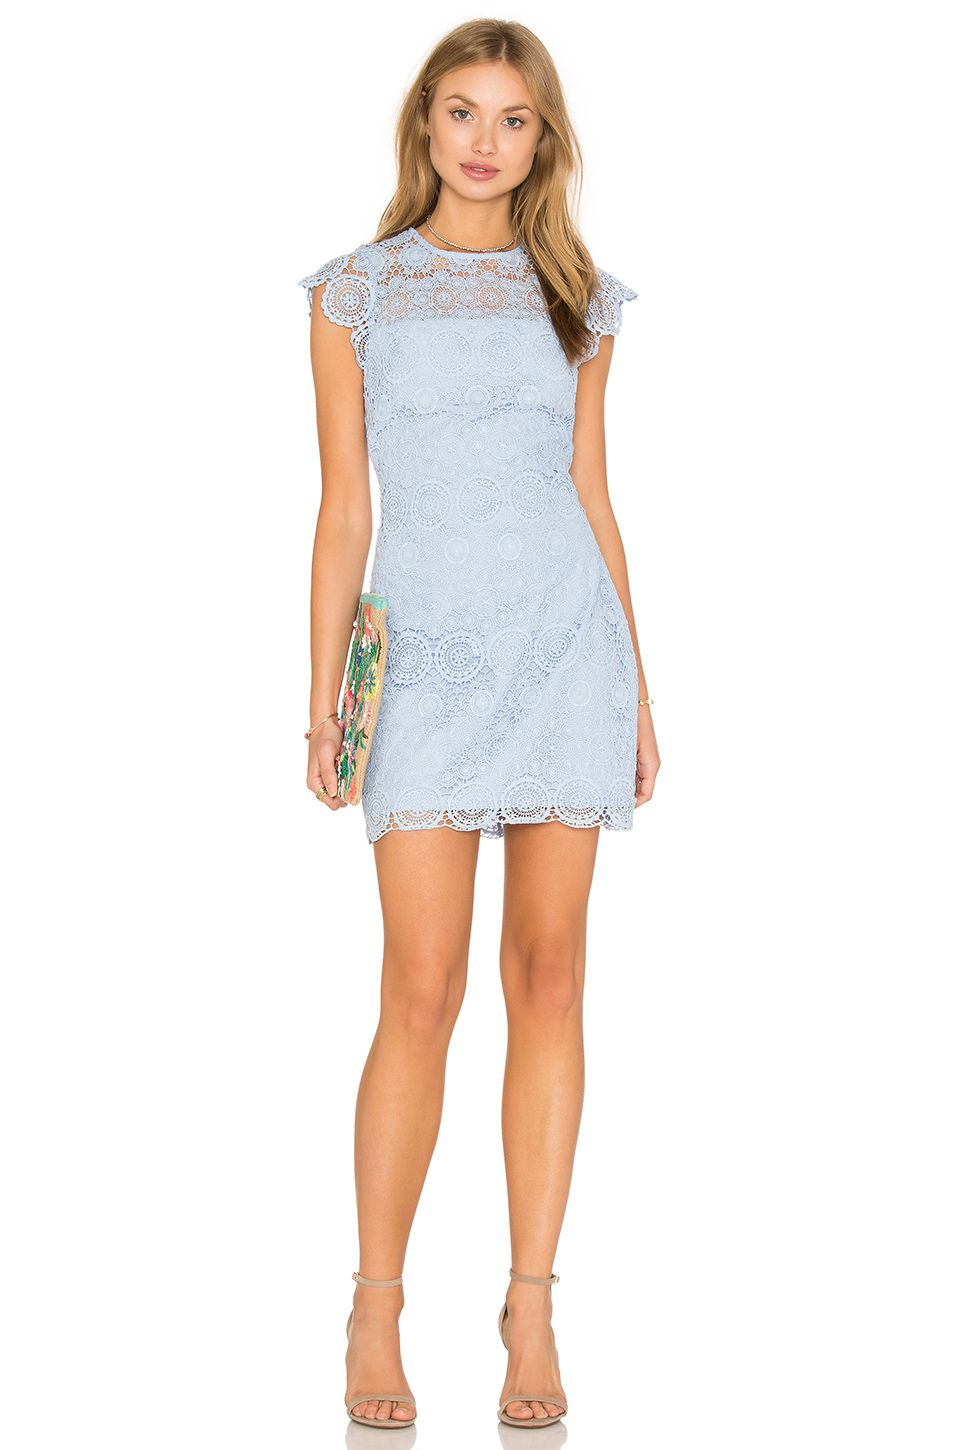 Shop for Endless Rose Lace Shift Dress in Powder Blue at REVOLVE. Free day  shipping and returns, 30 day price match guarantee.